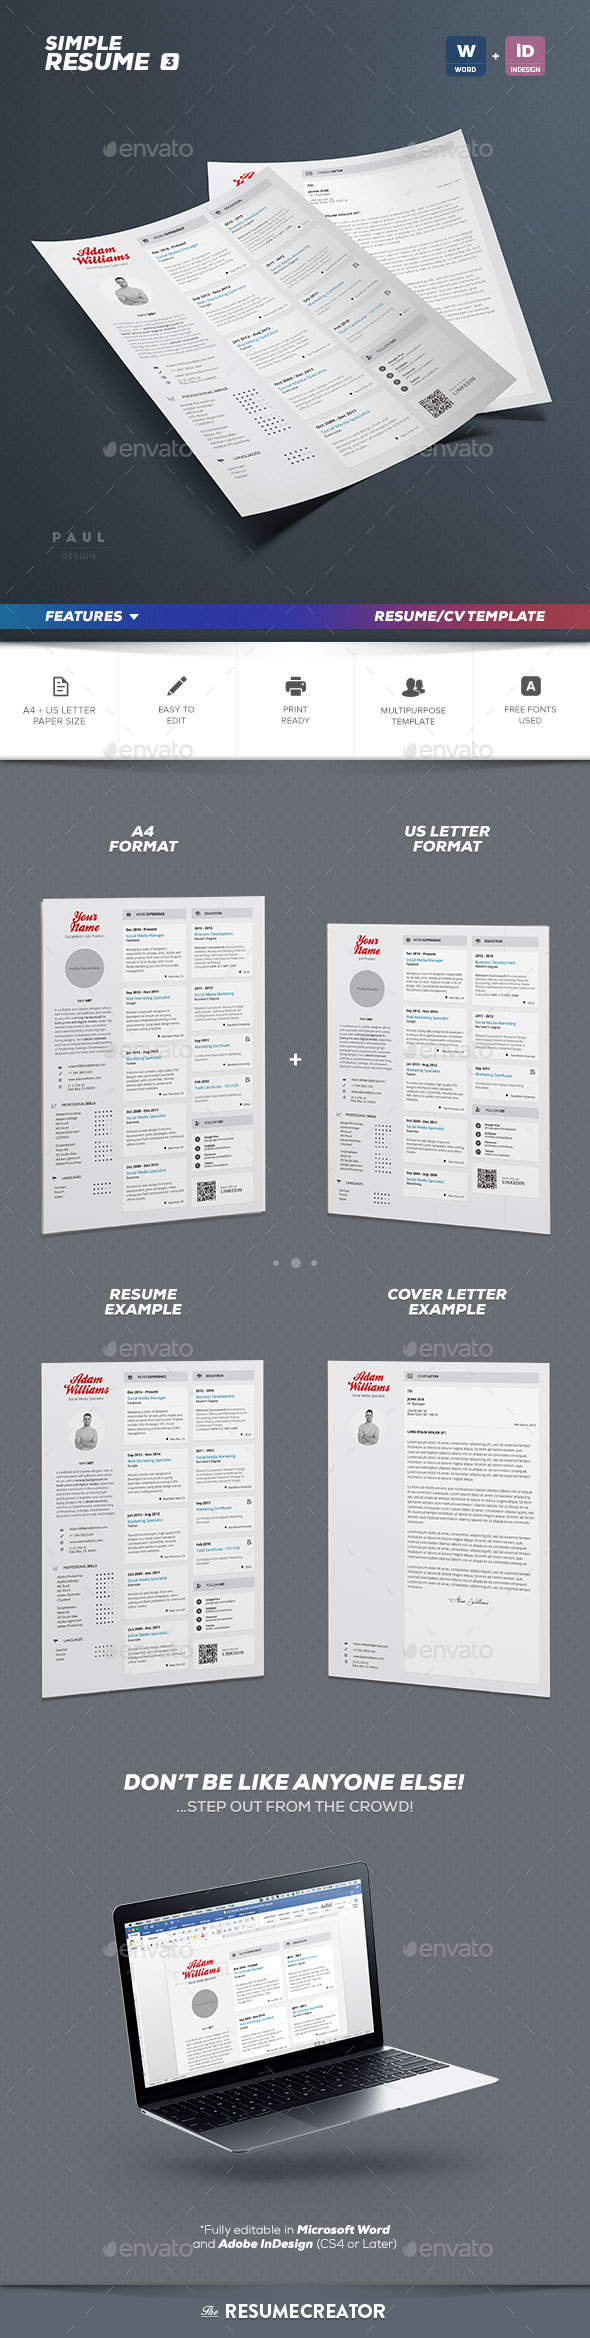 Simple Resume Vol. 3